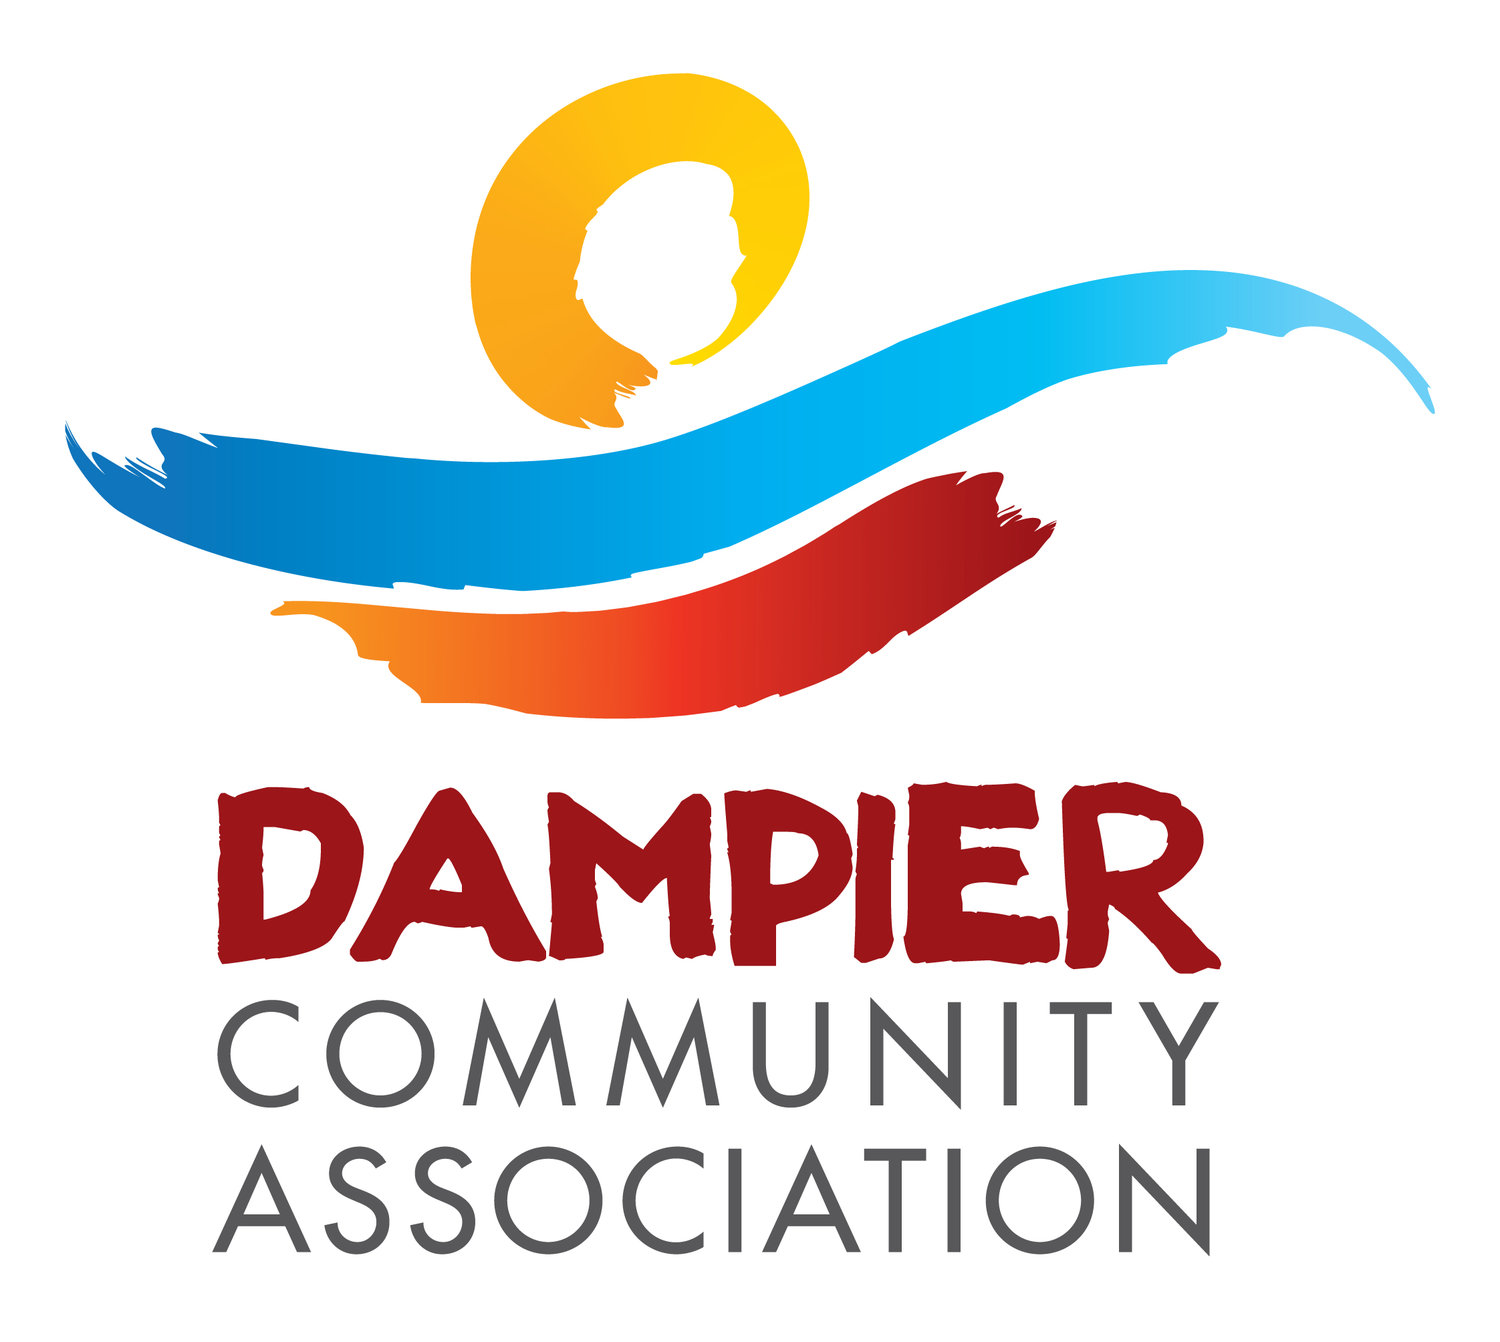 Dampier Community Association